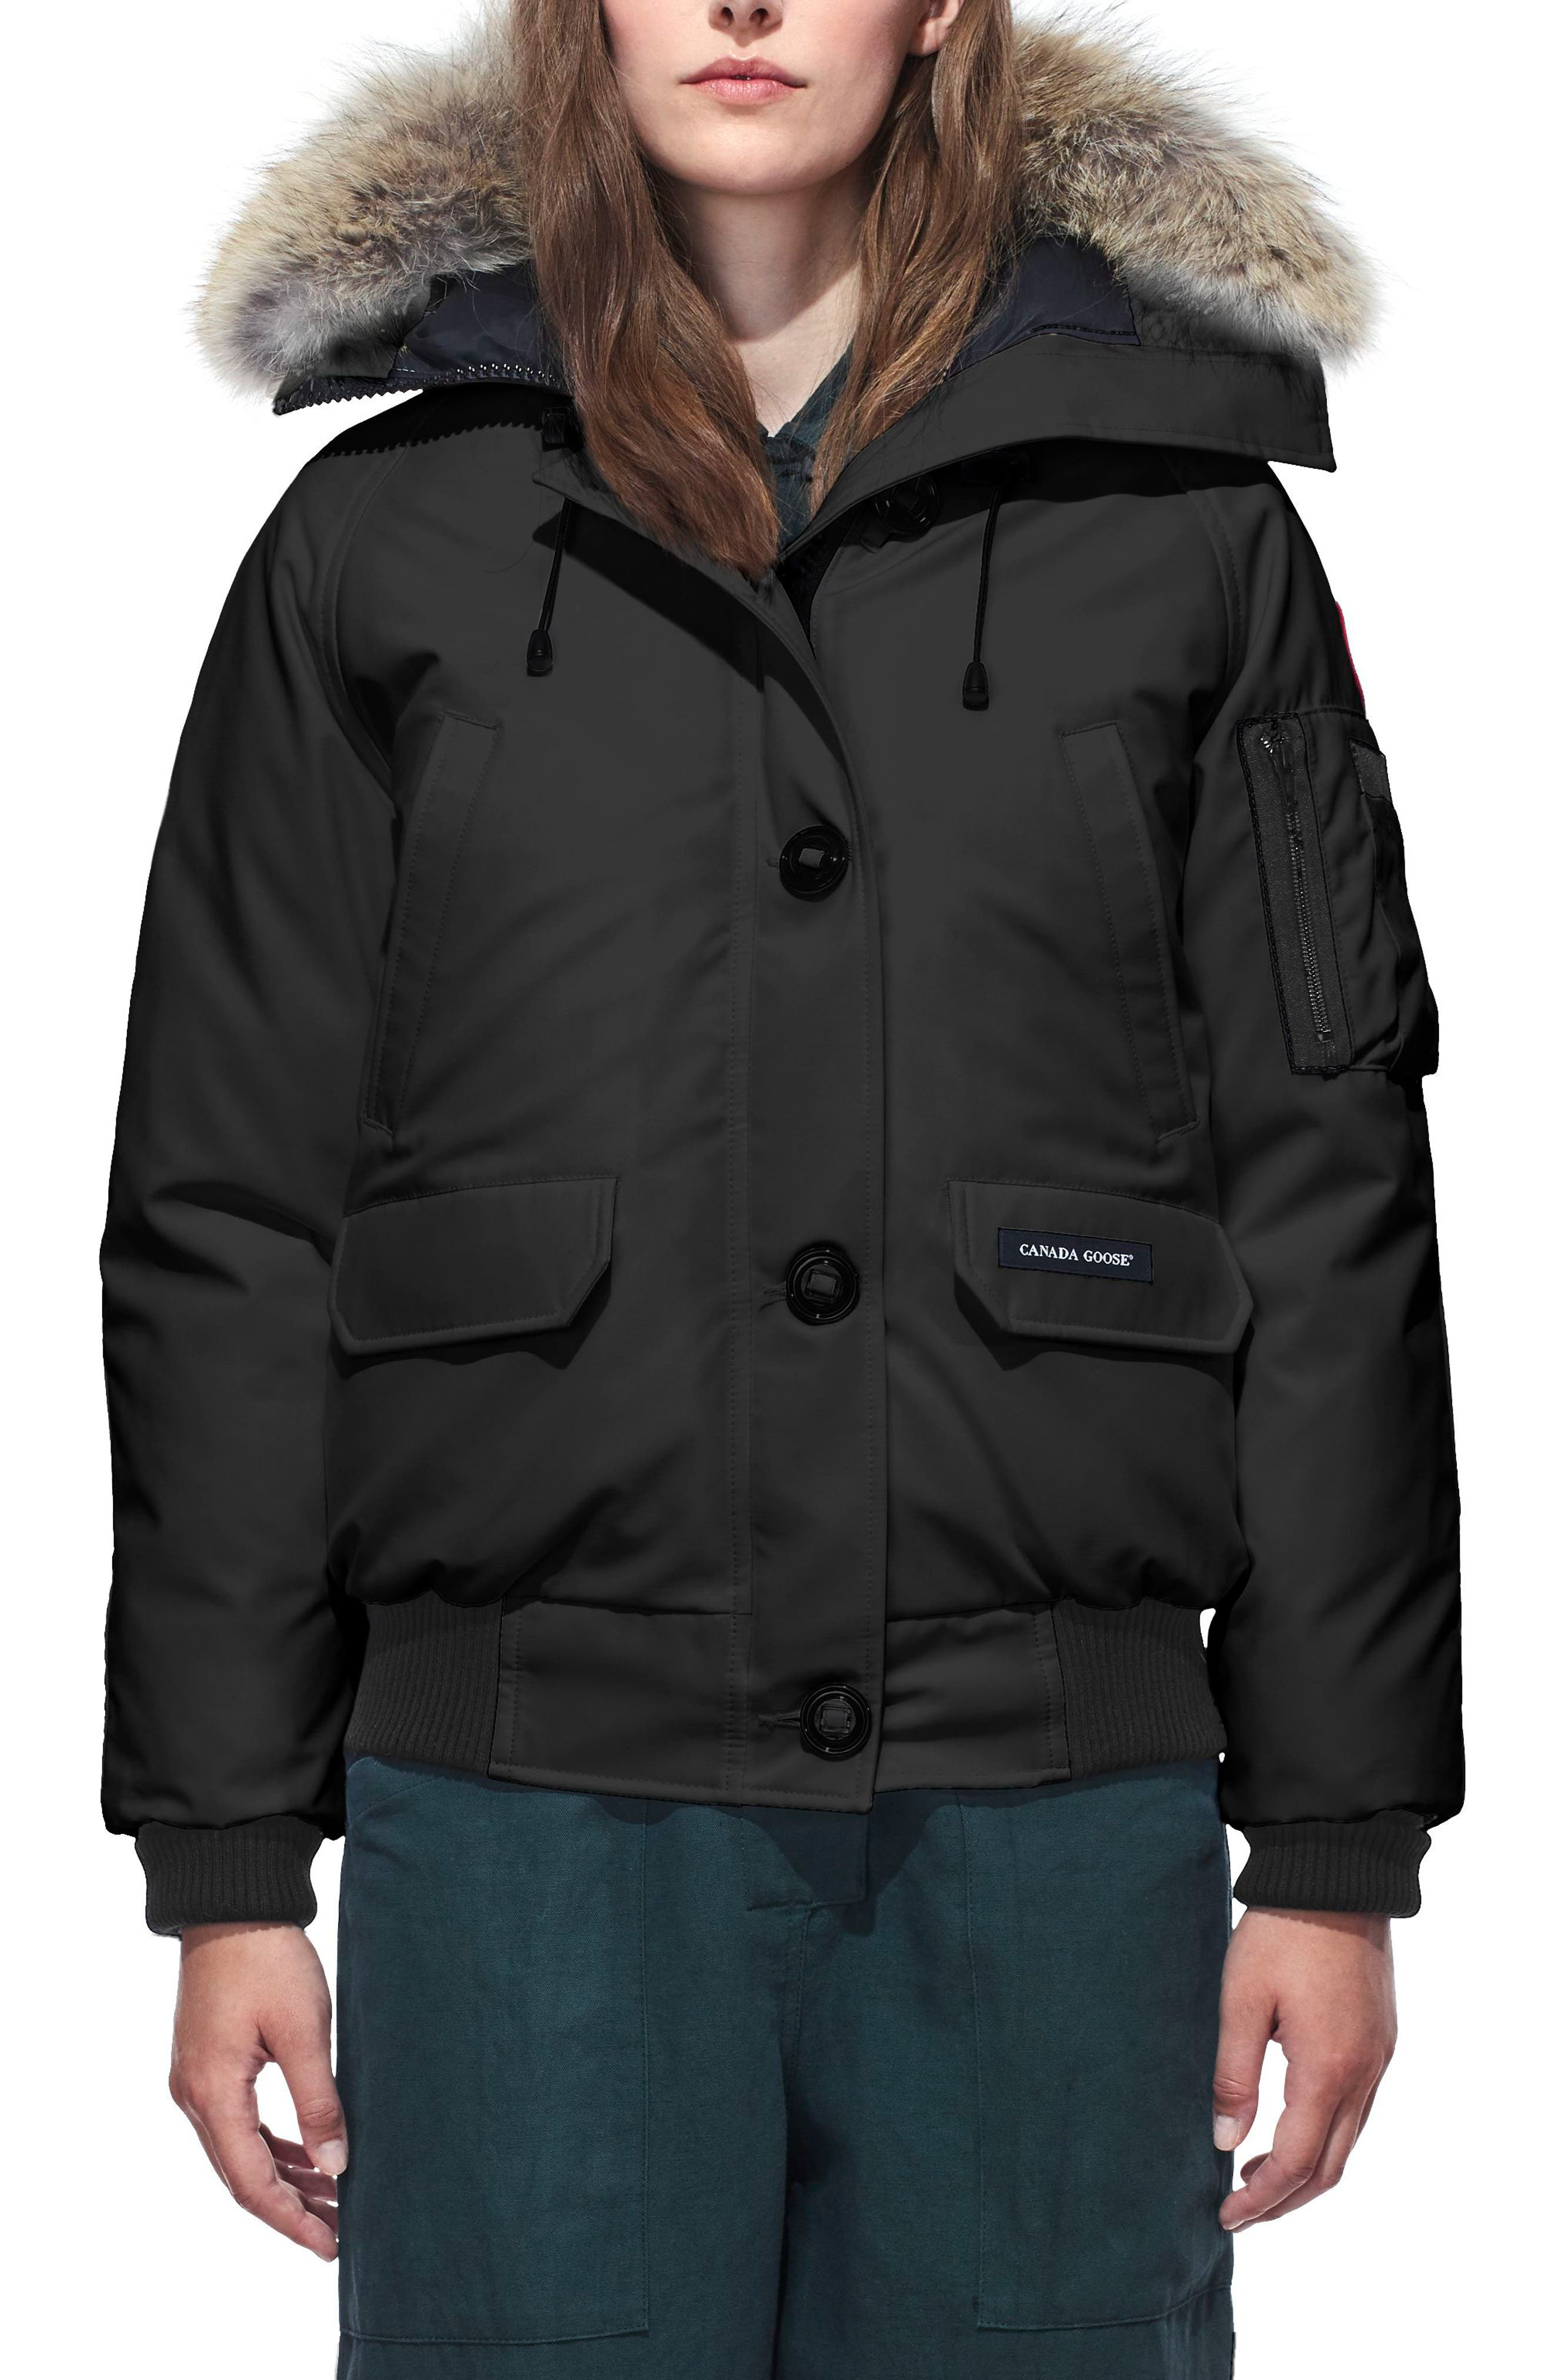 CANADA GOOSE, Chilliwack Fusion Fit 625 Fill Power Down Bomber Jacket with Genuine Coyote Fur Trim, Main thumbnail 1, color, BLACK